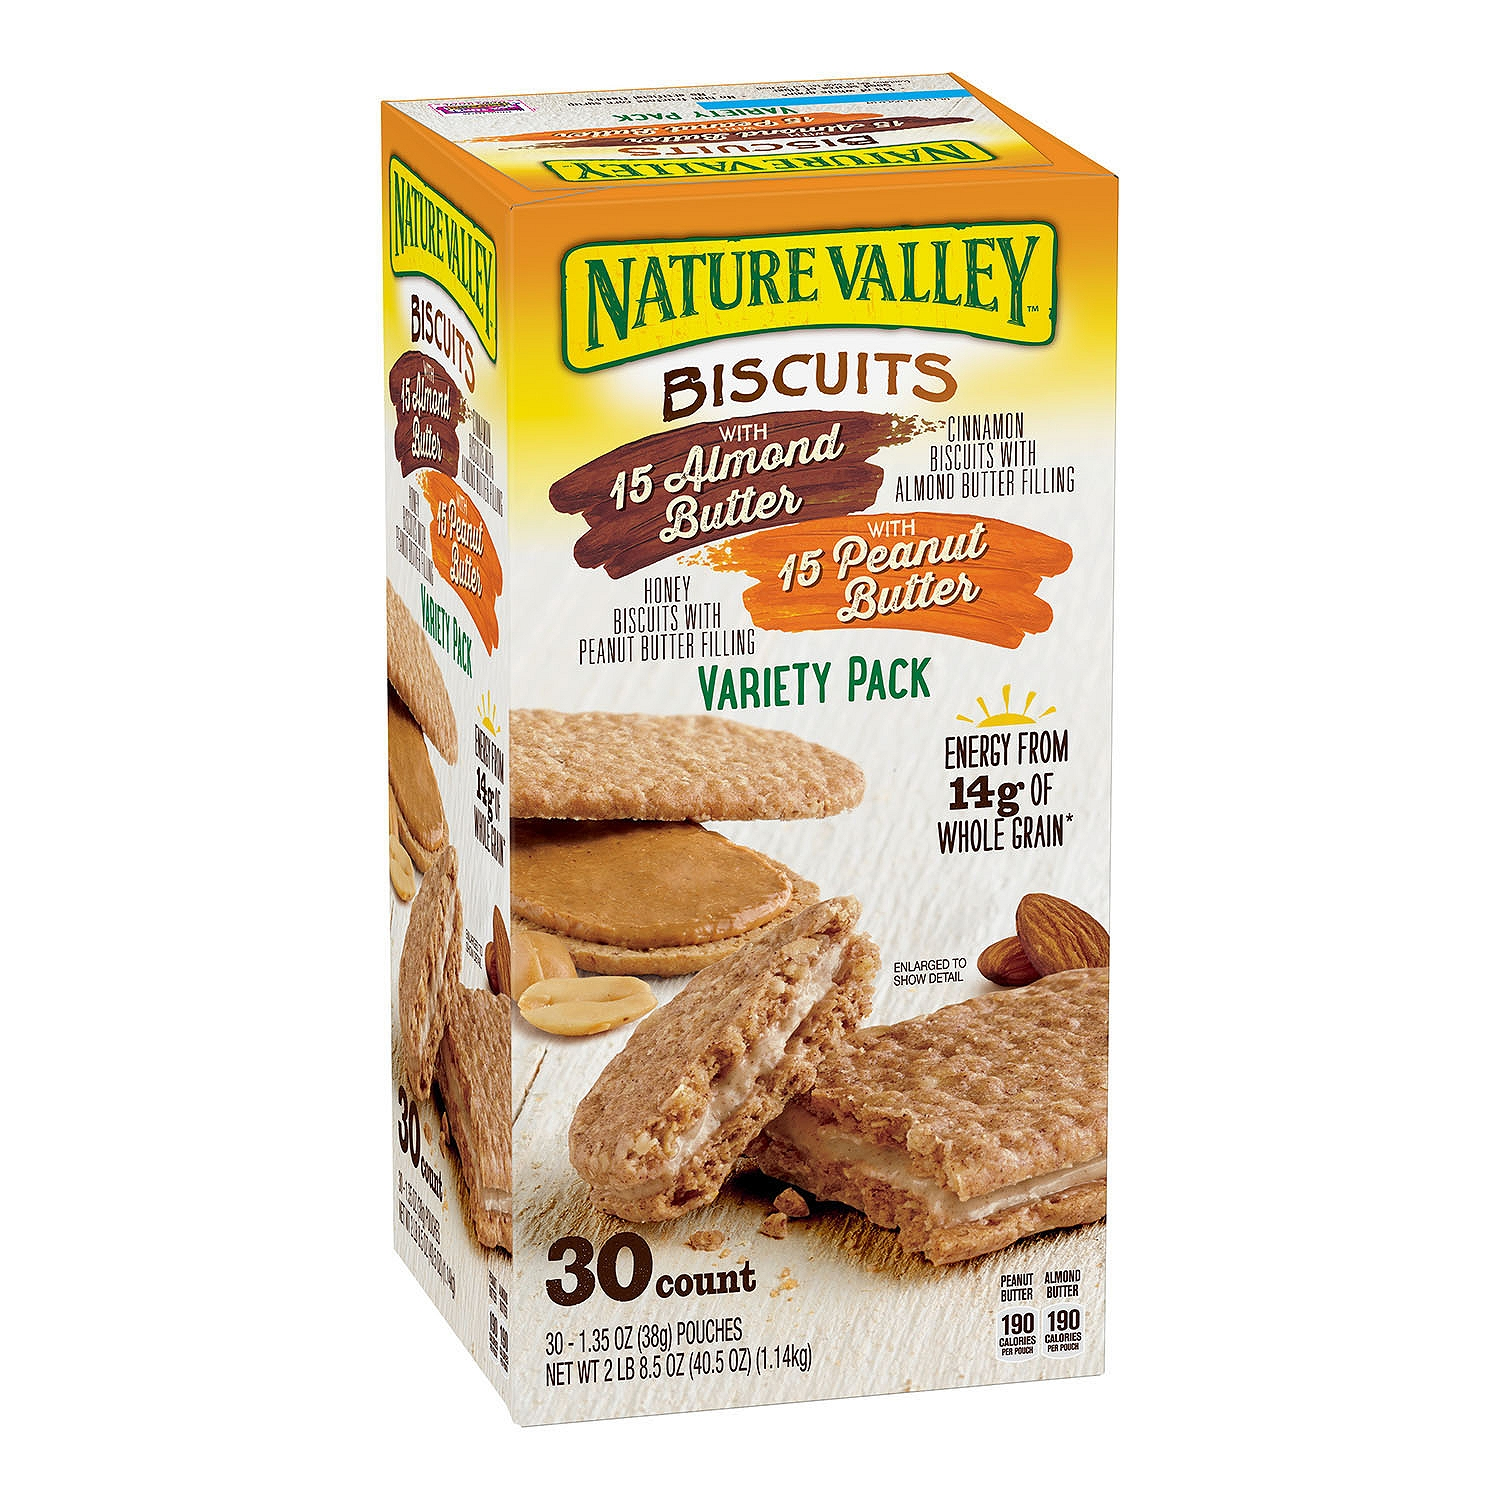 Nature Valley Biscuit Sandwich Variety, Almond Butter & Peanut Butter, 30 Count